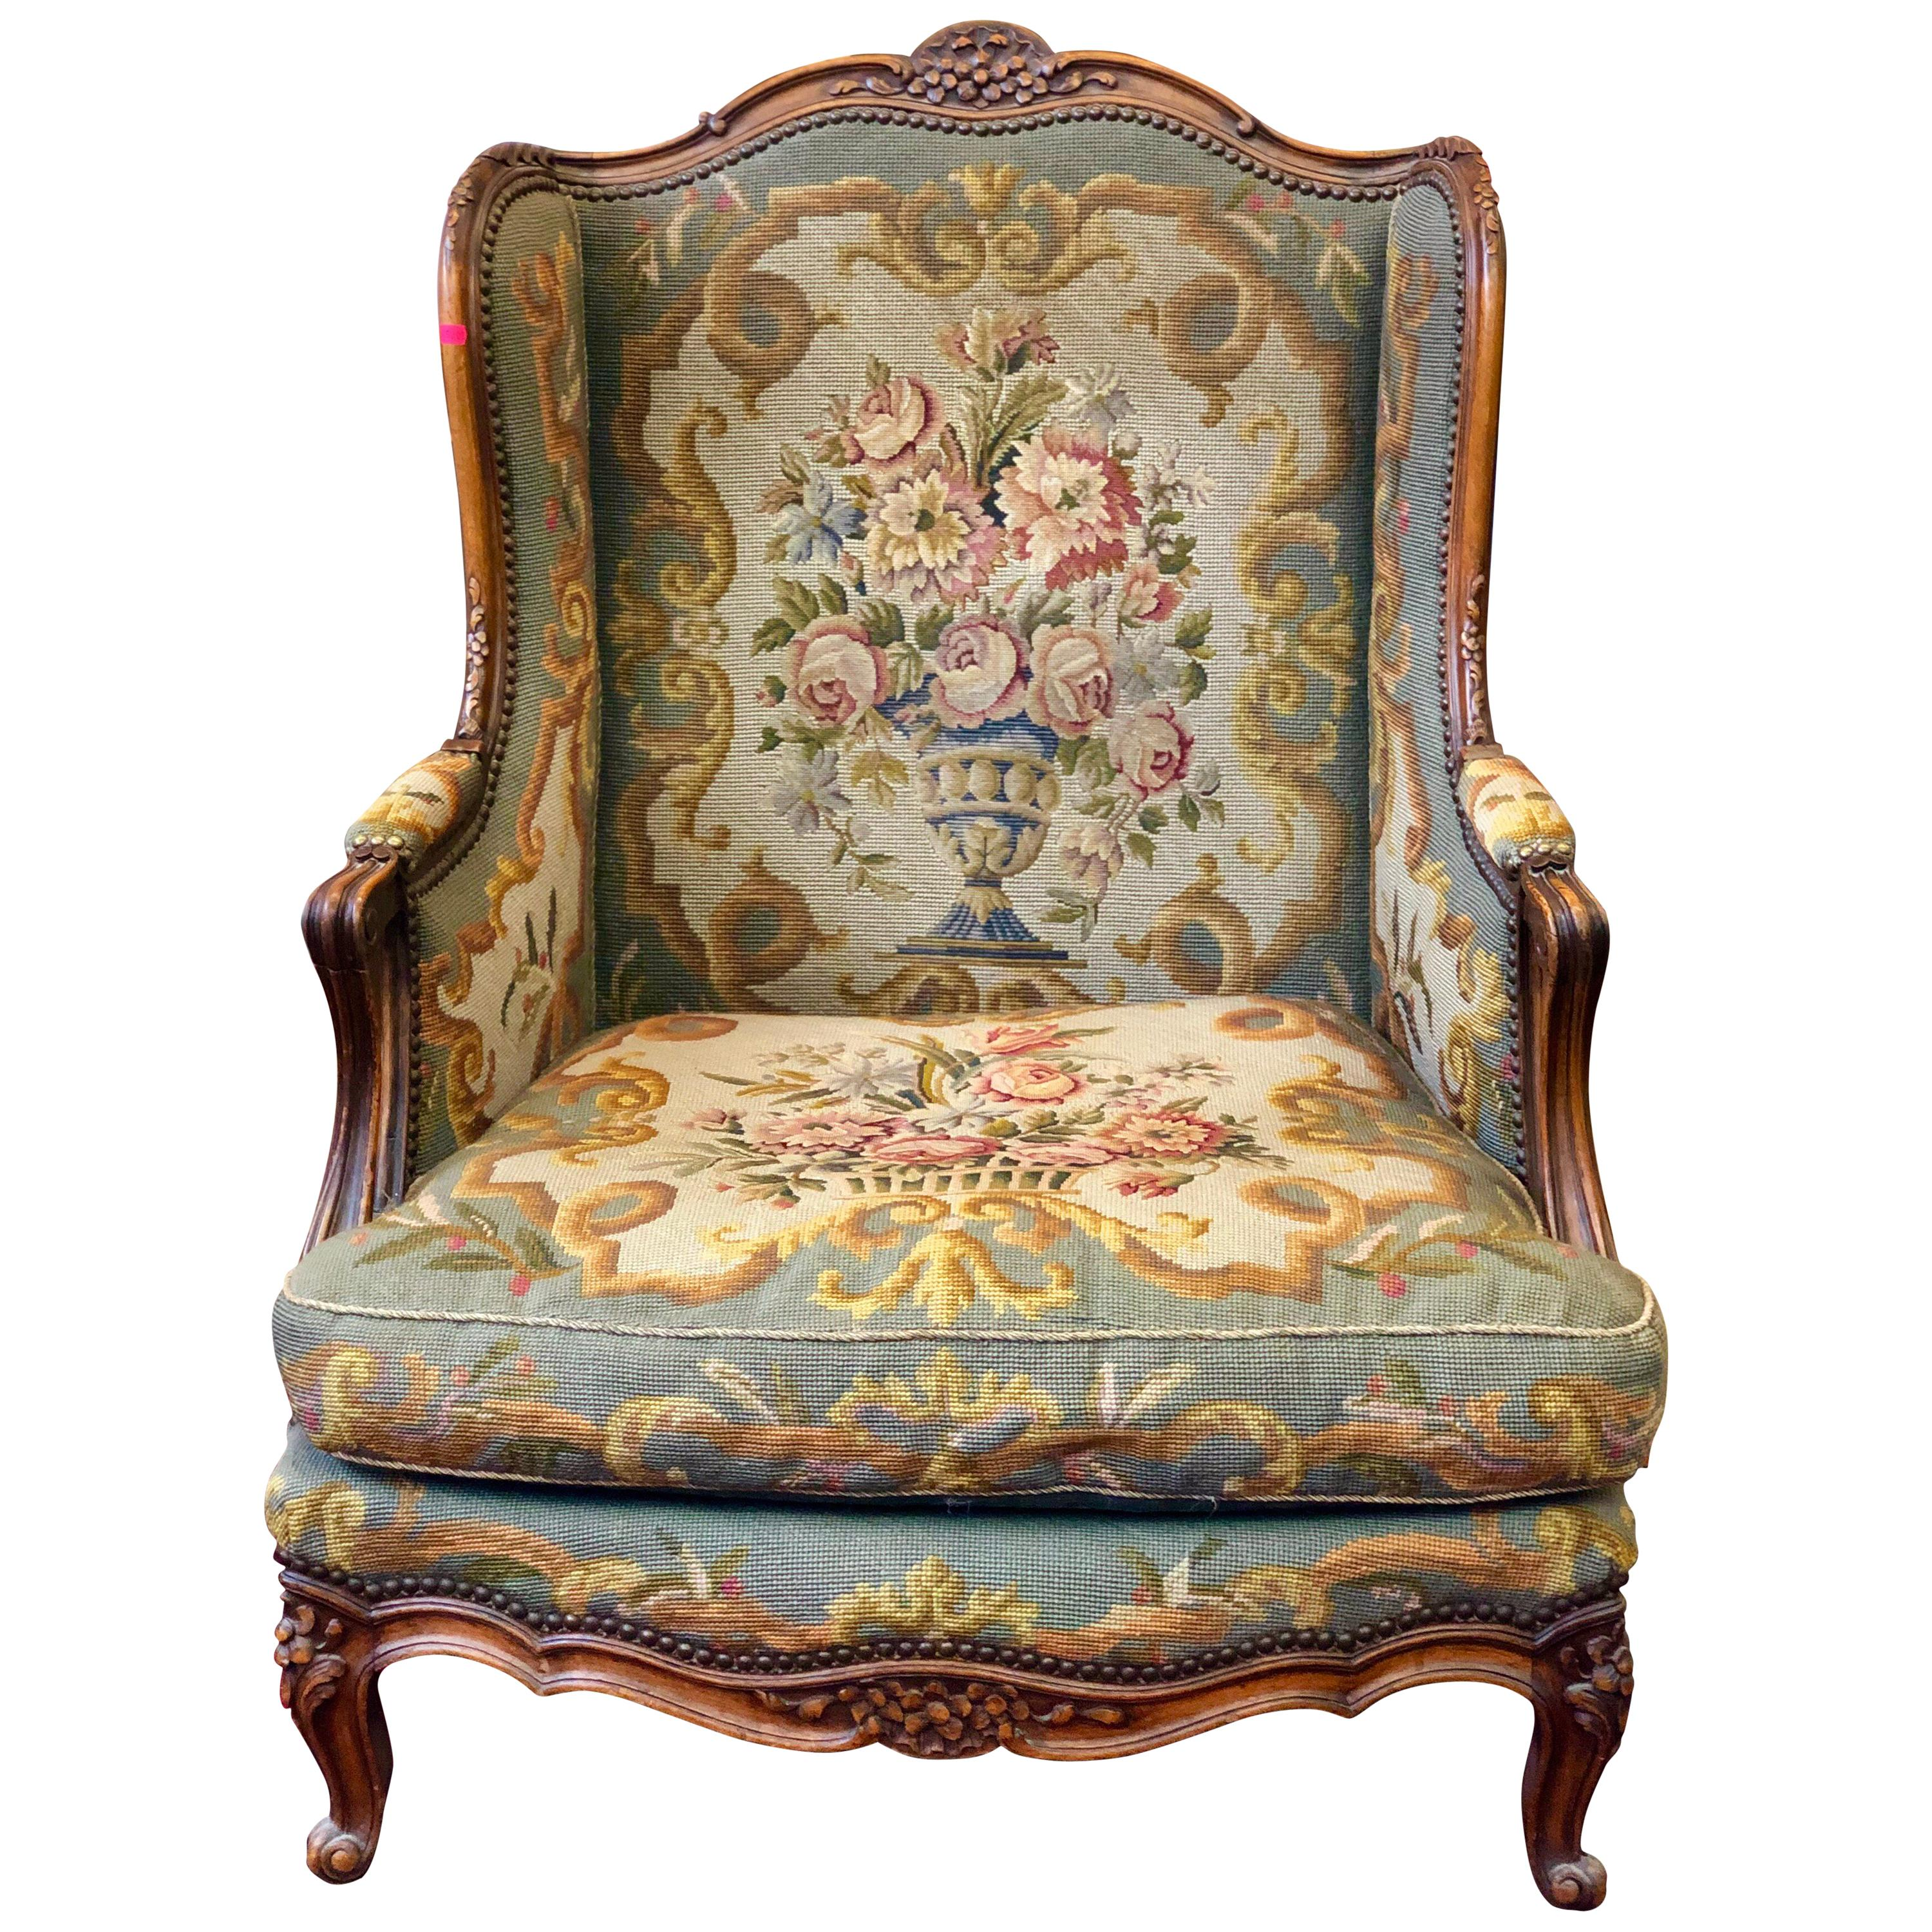 Fauteuils Bergeres Oreilles Antique Fauteuil Bergere Carved Wood Wingback Tapestry Lounge Armchair France